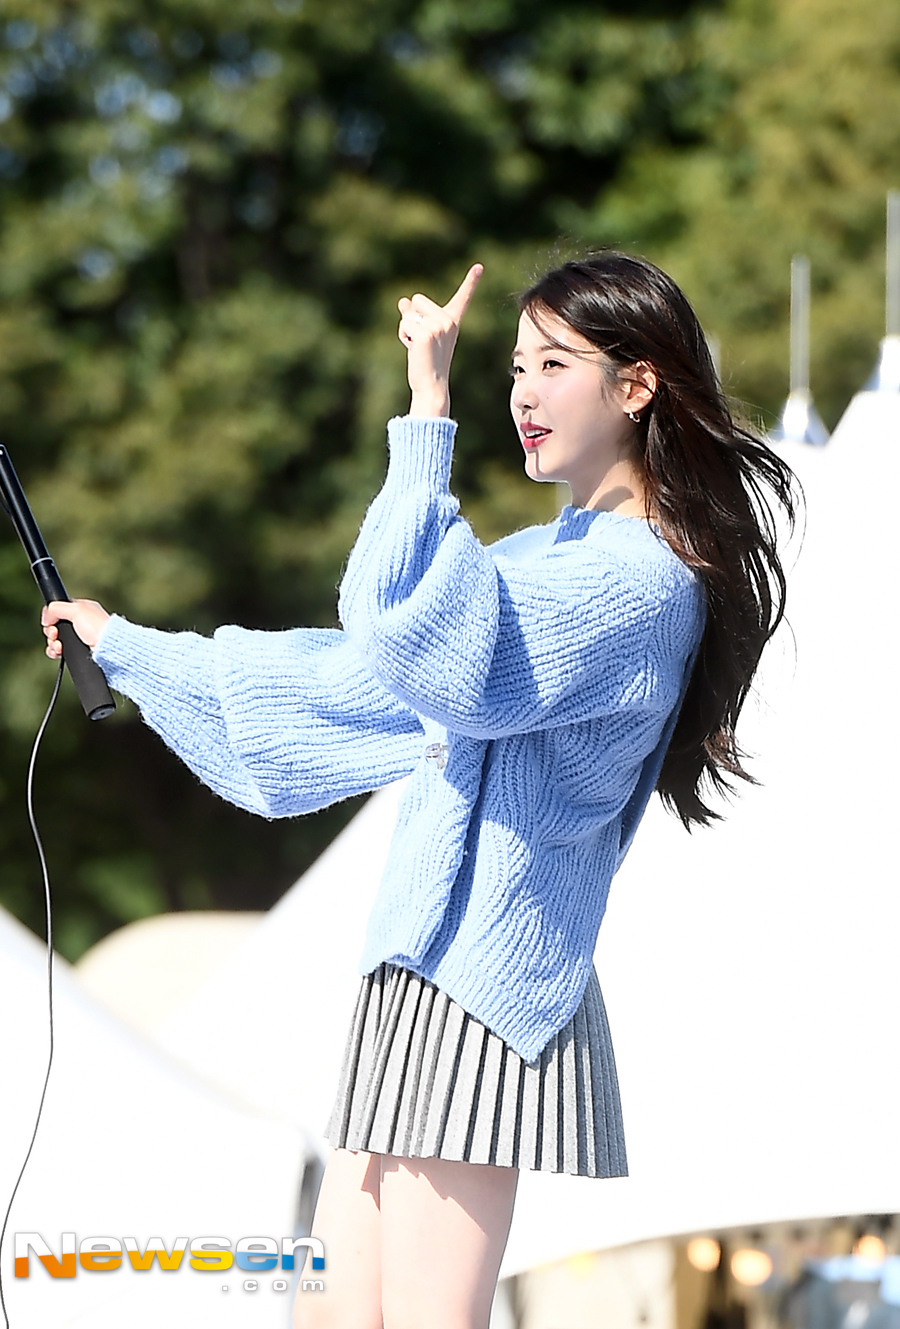 Iu One More Selfie